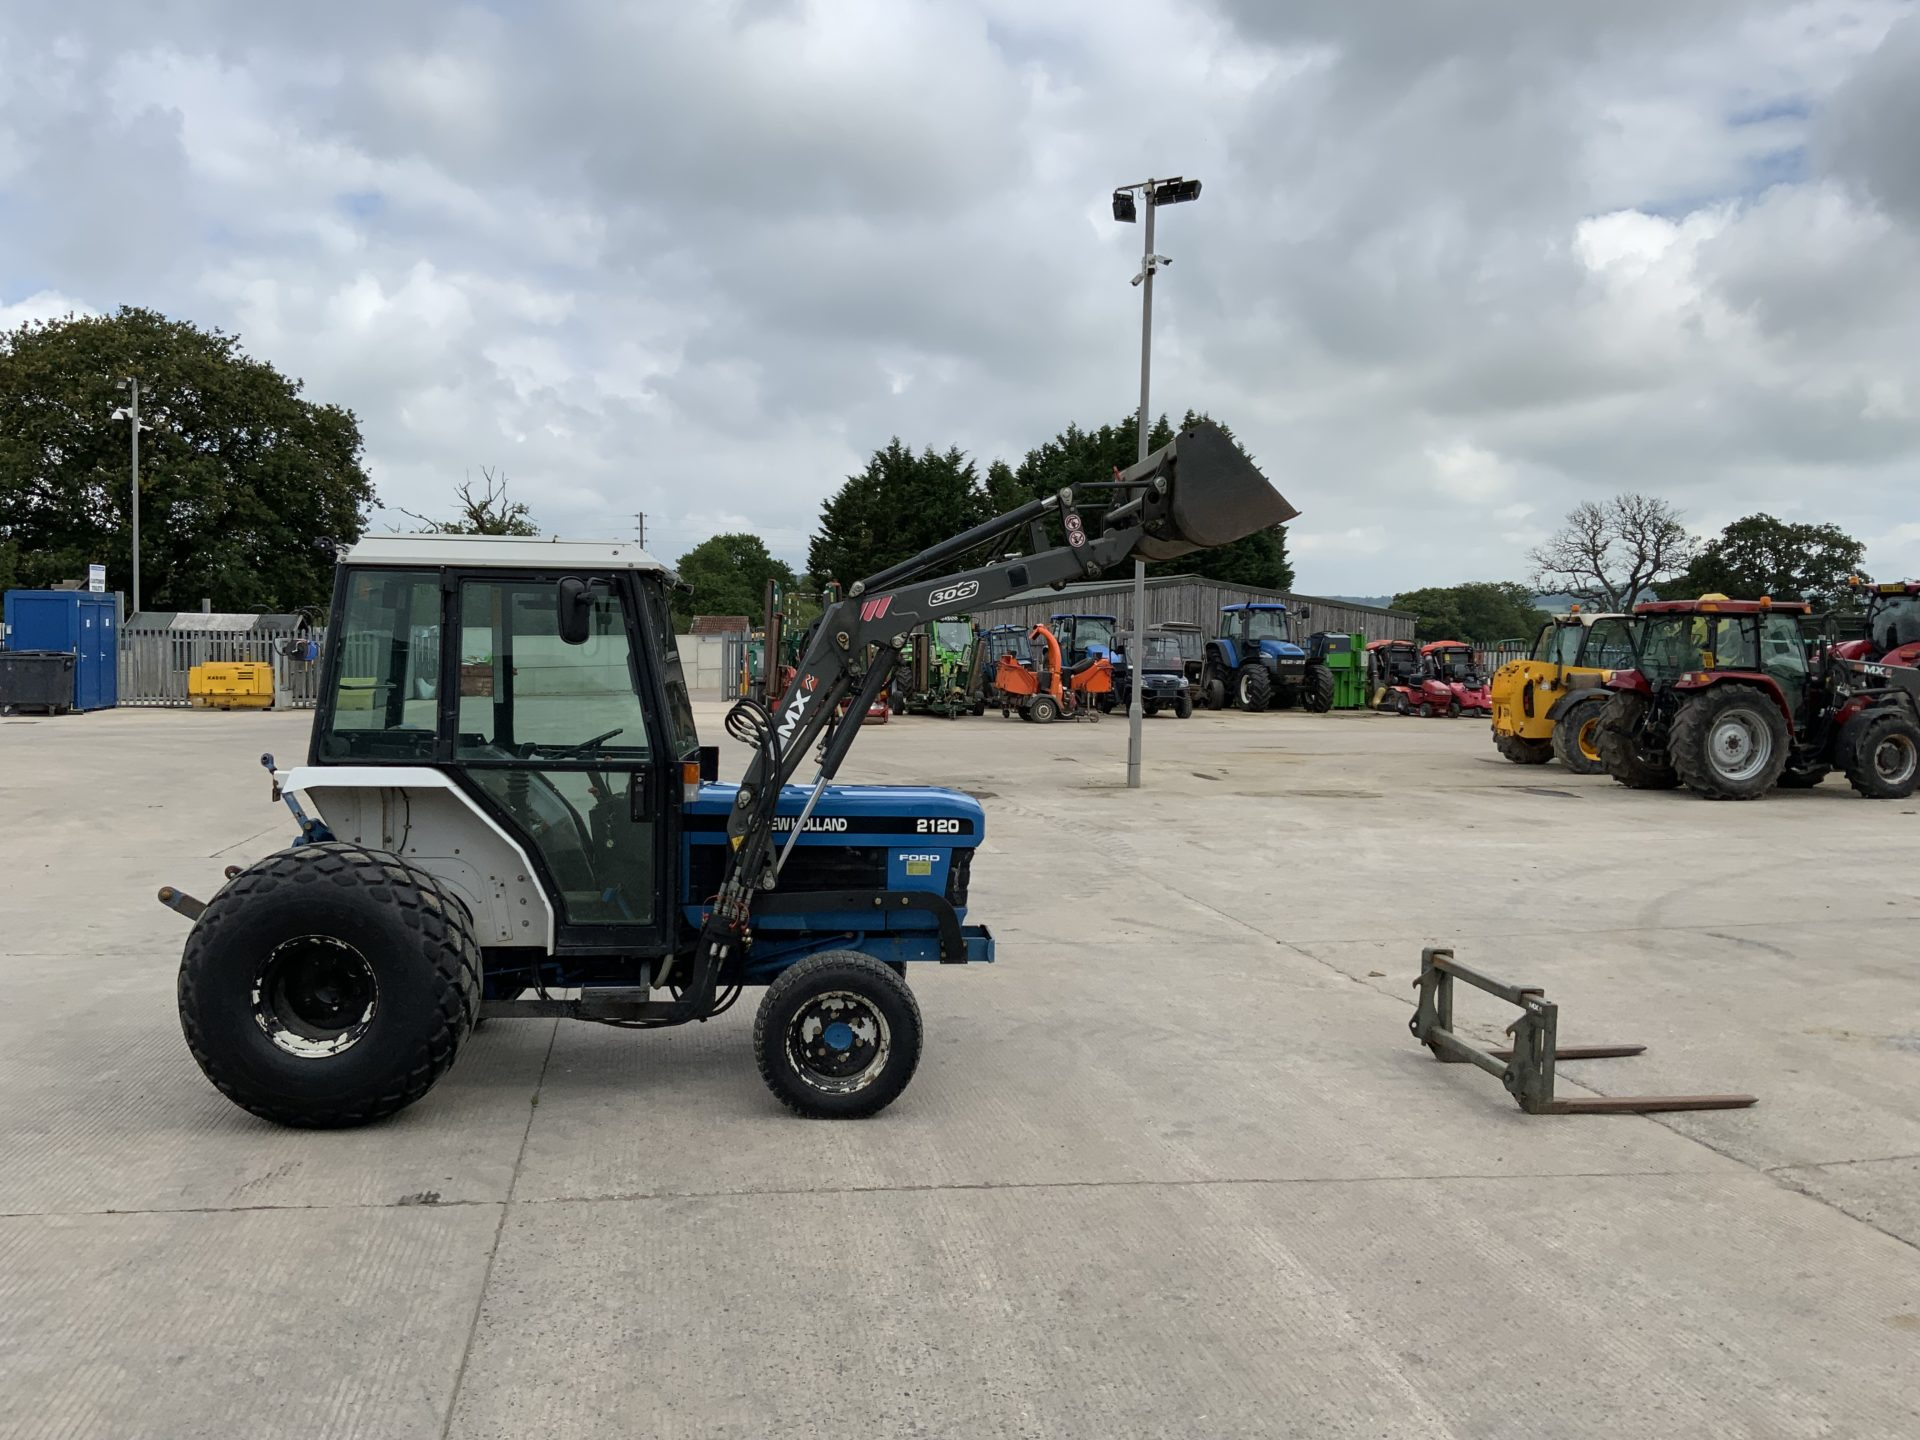 New holland, the clean energy. New Holland Ford 2120 Compact Tractor St10569 Rj And Kd Mclean Ltd Tractors And Plant